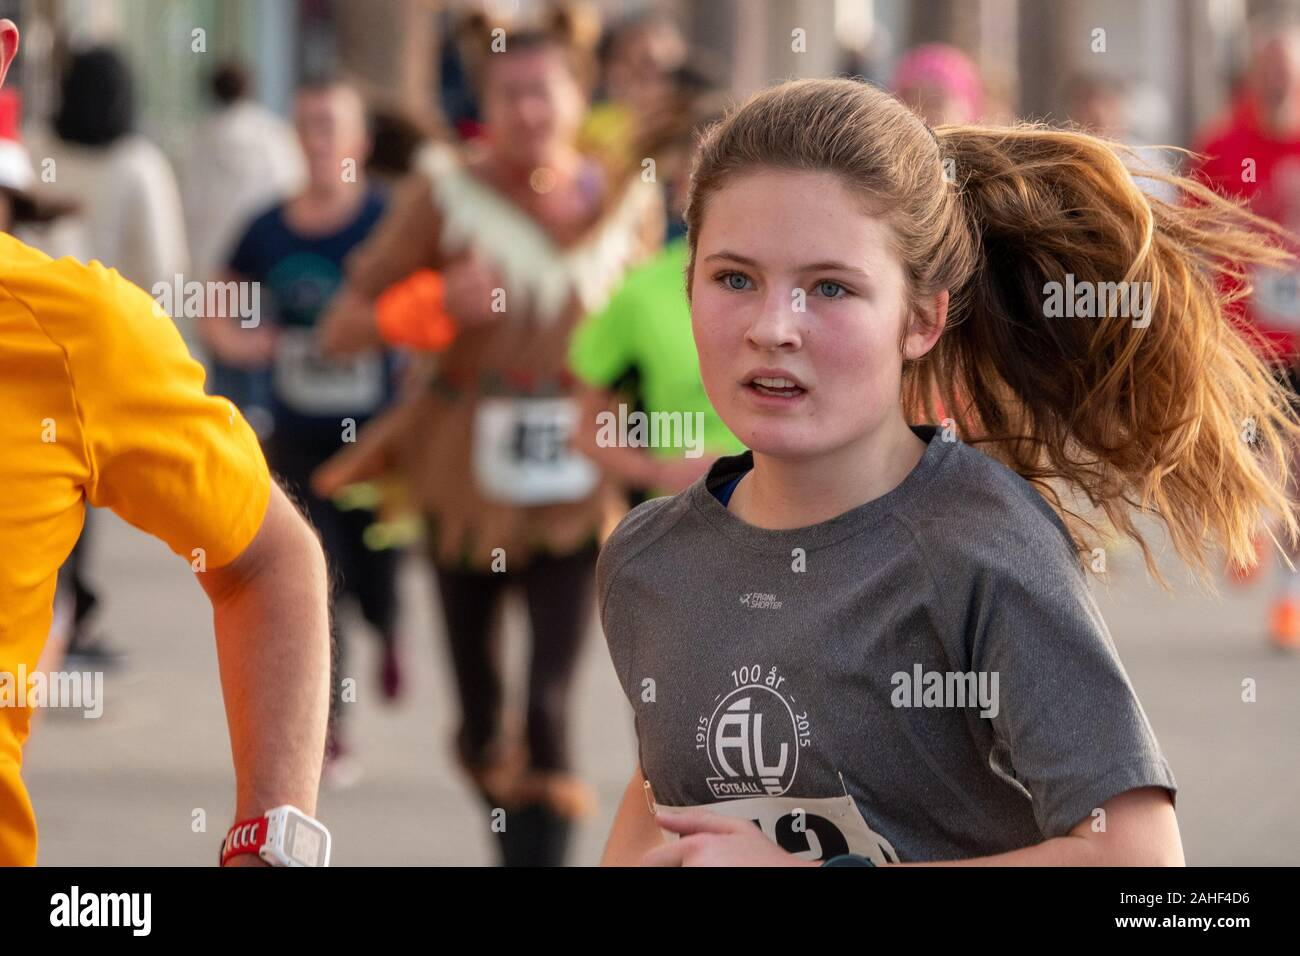 Benidorm, Alicante Province, Spain. 29th December 2019. The annual San Silvestre fun run, 5k fun run seen today in the New town and along the promenade included runners from many UK athletics clubs. Credit: Mick Flynn/Alamy Live News Stock Photo